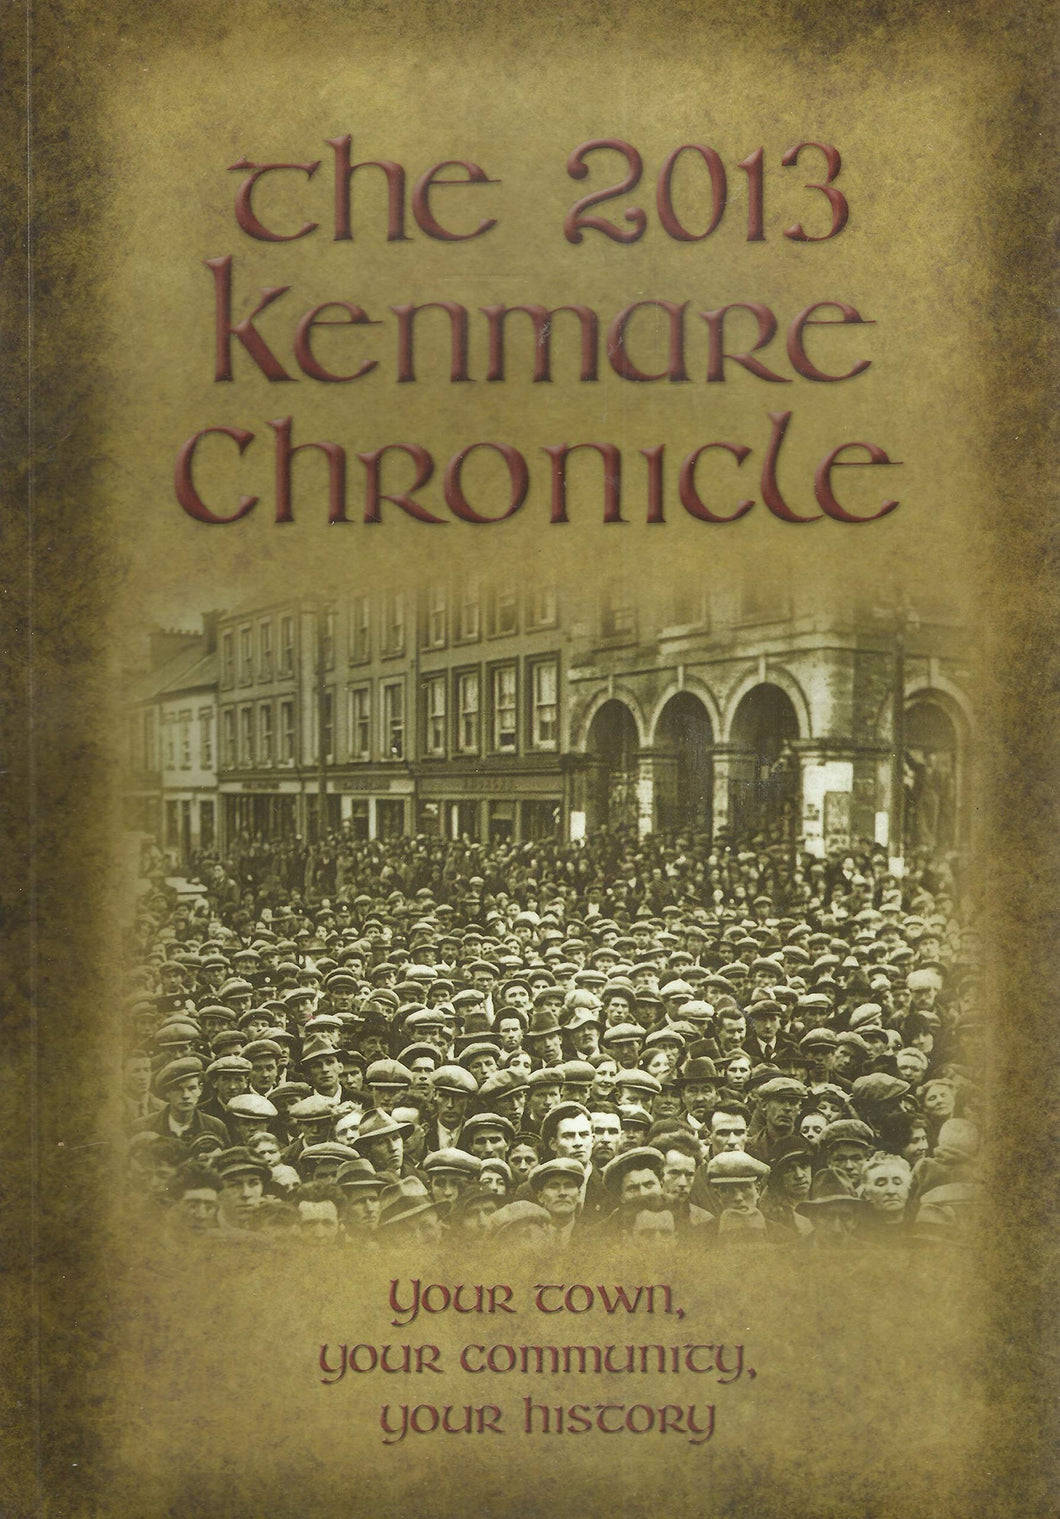 The 2013 Kenmare Chronicle: Your Town, Your Community, Your History